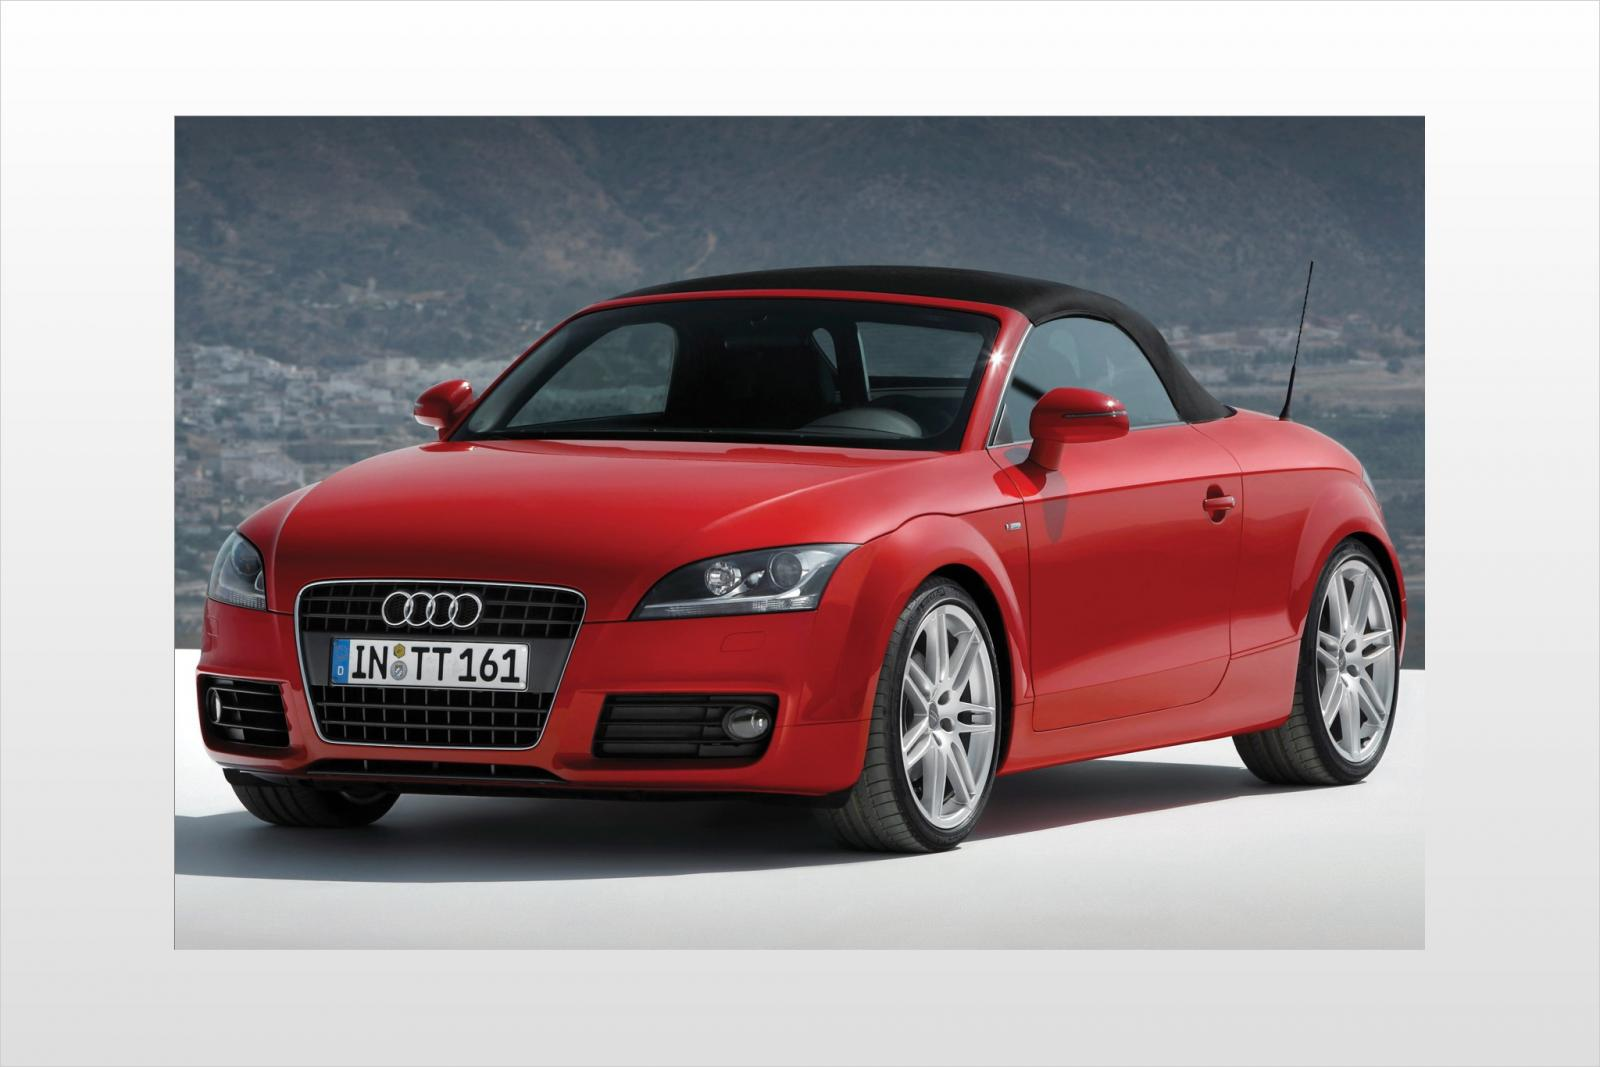 2008 audi tt information and photos zombiedrive. Black Bedroom Furniture Sets. Home Design Ideas